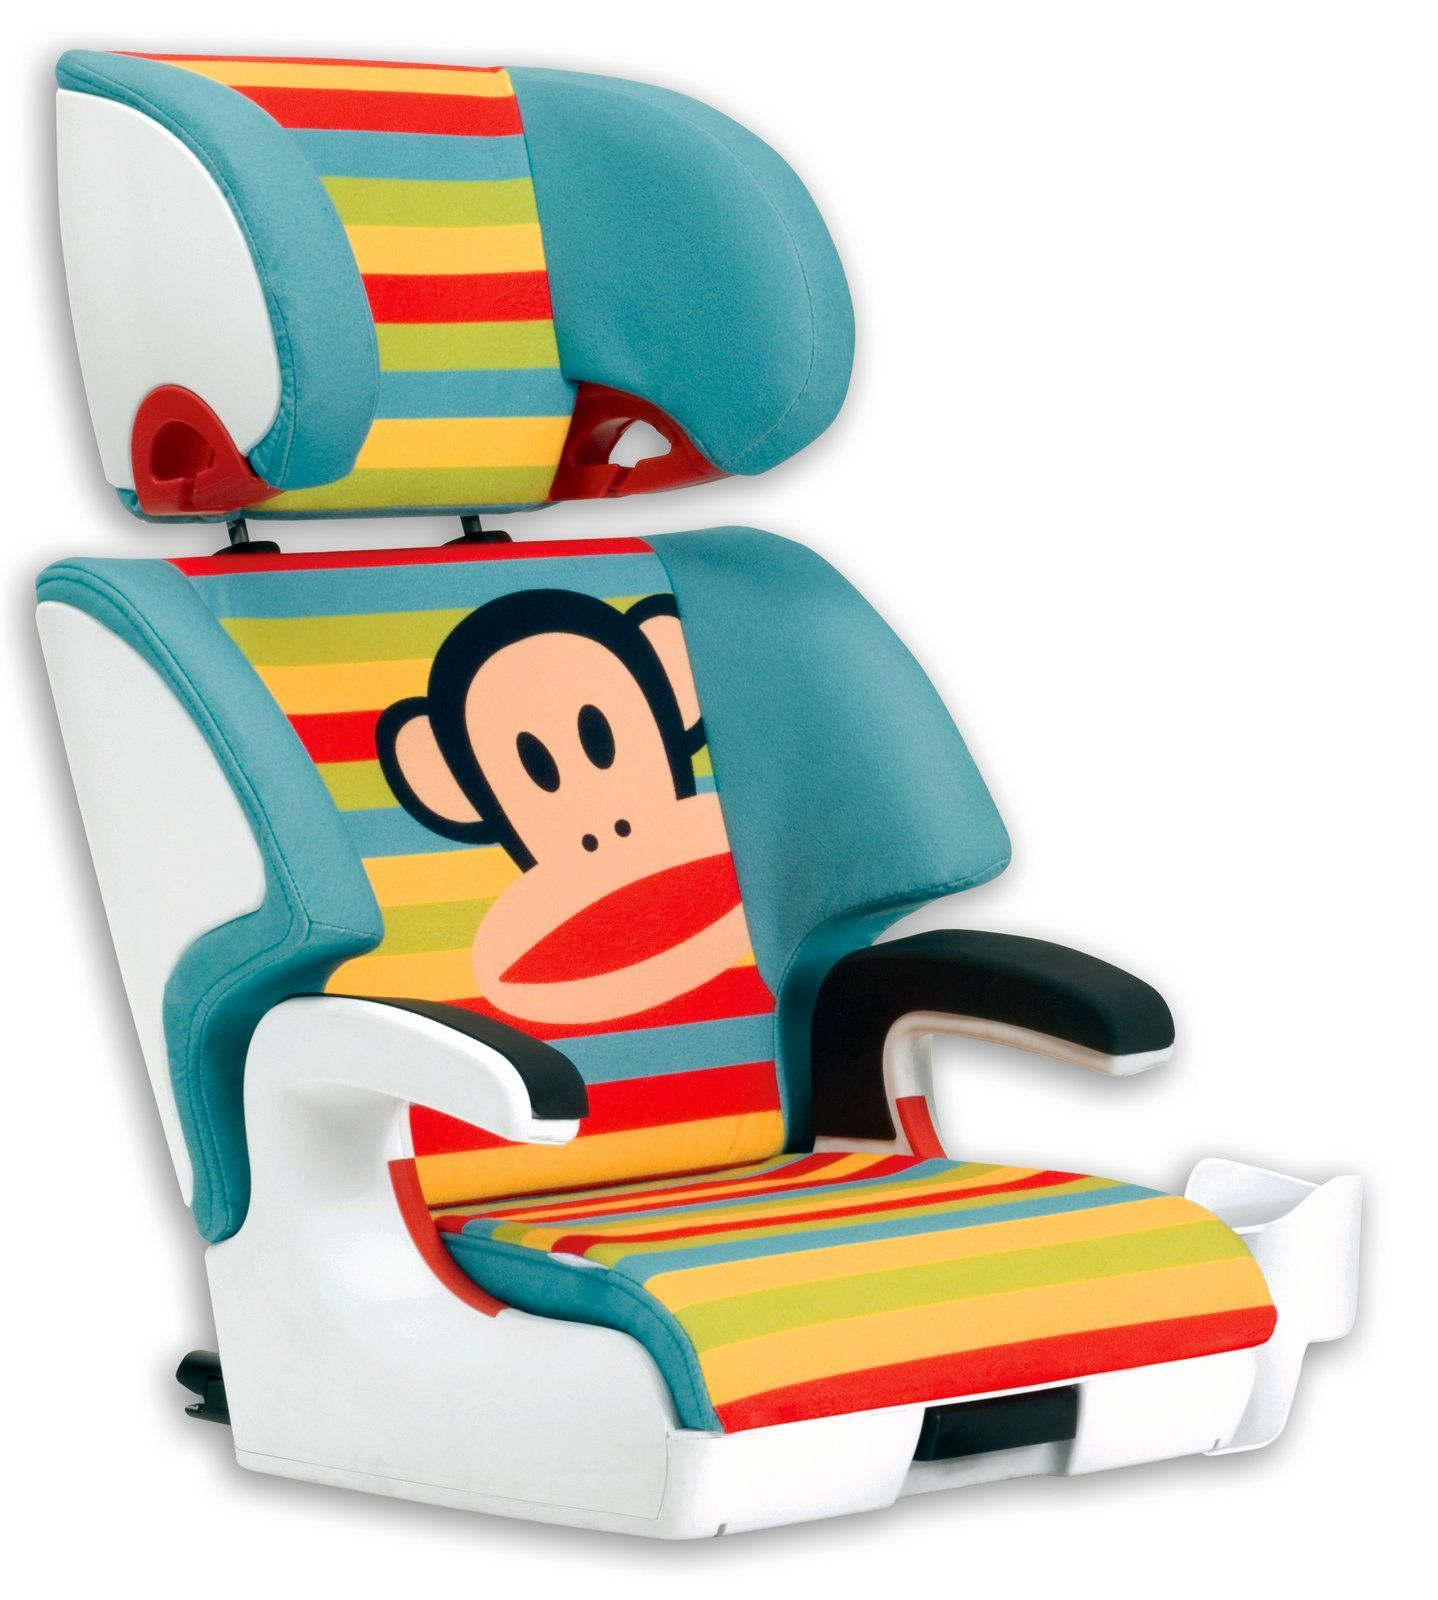 Paul Frank For Kids Cose Pinterest Paul Frank And Babies